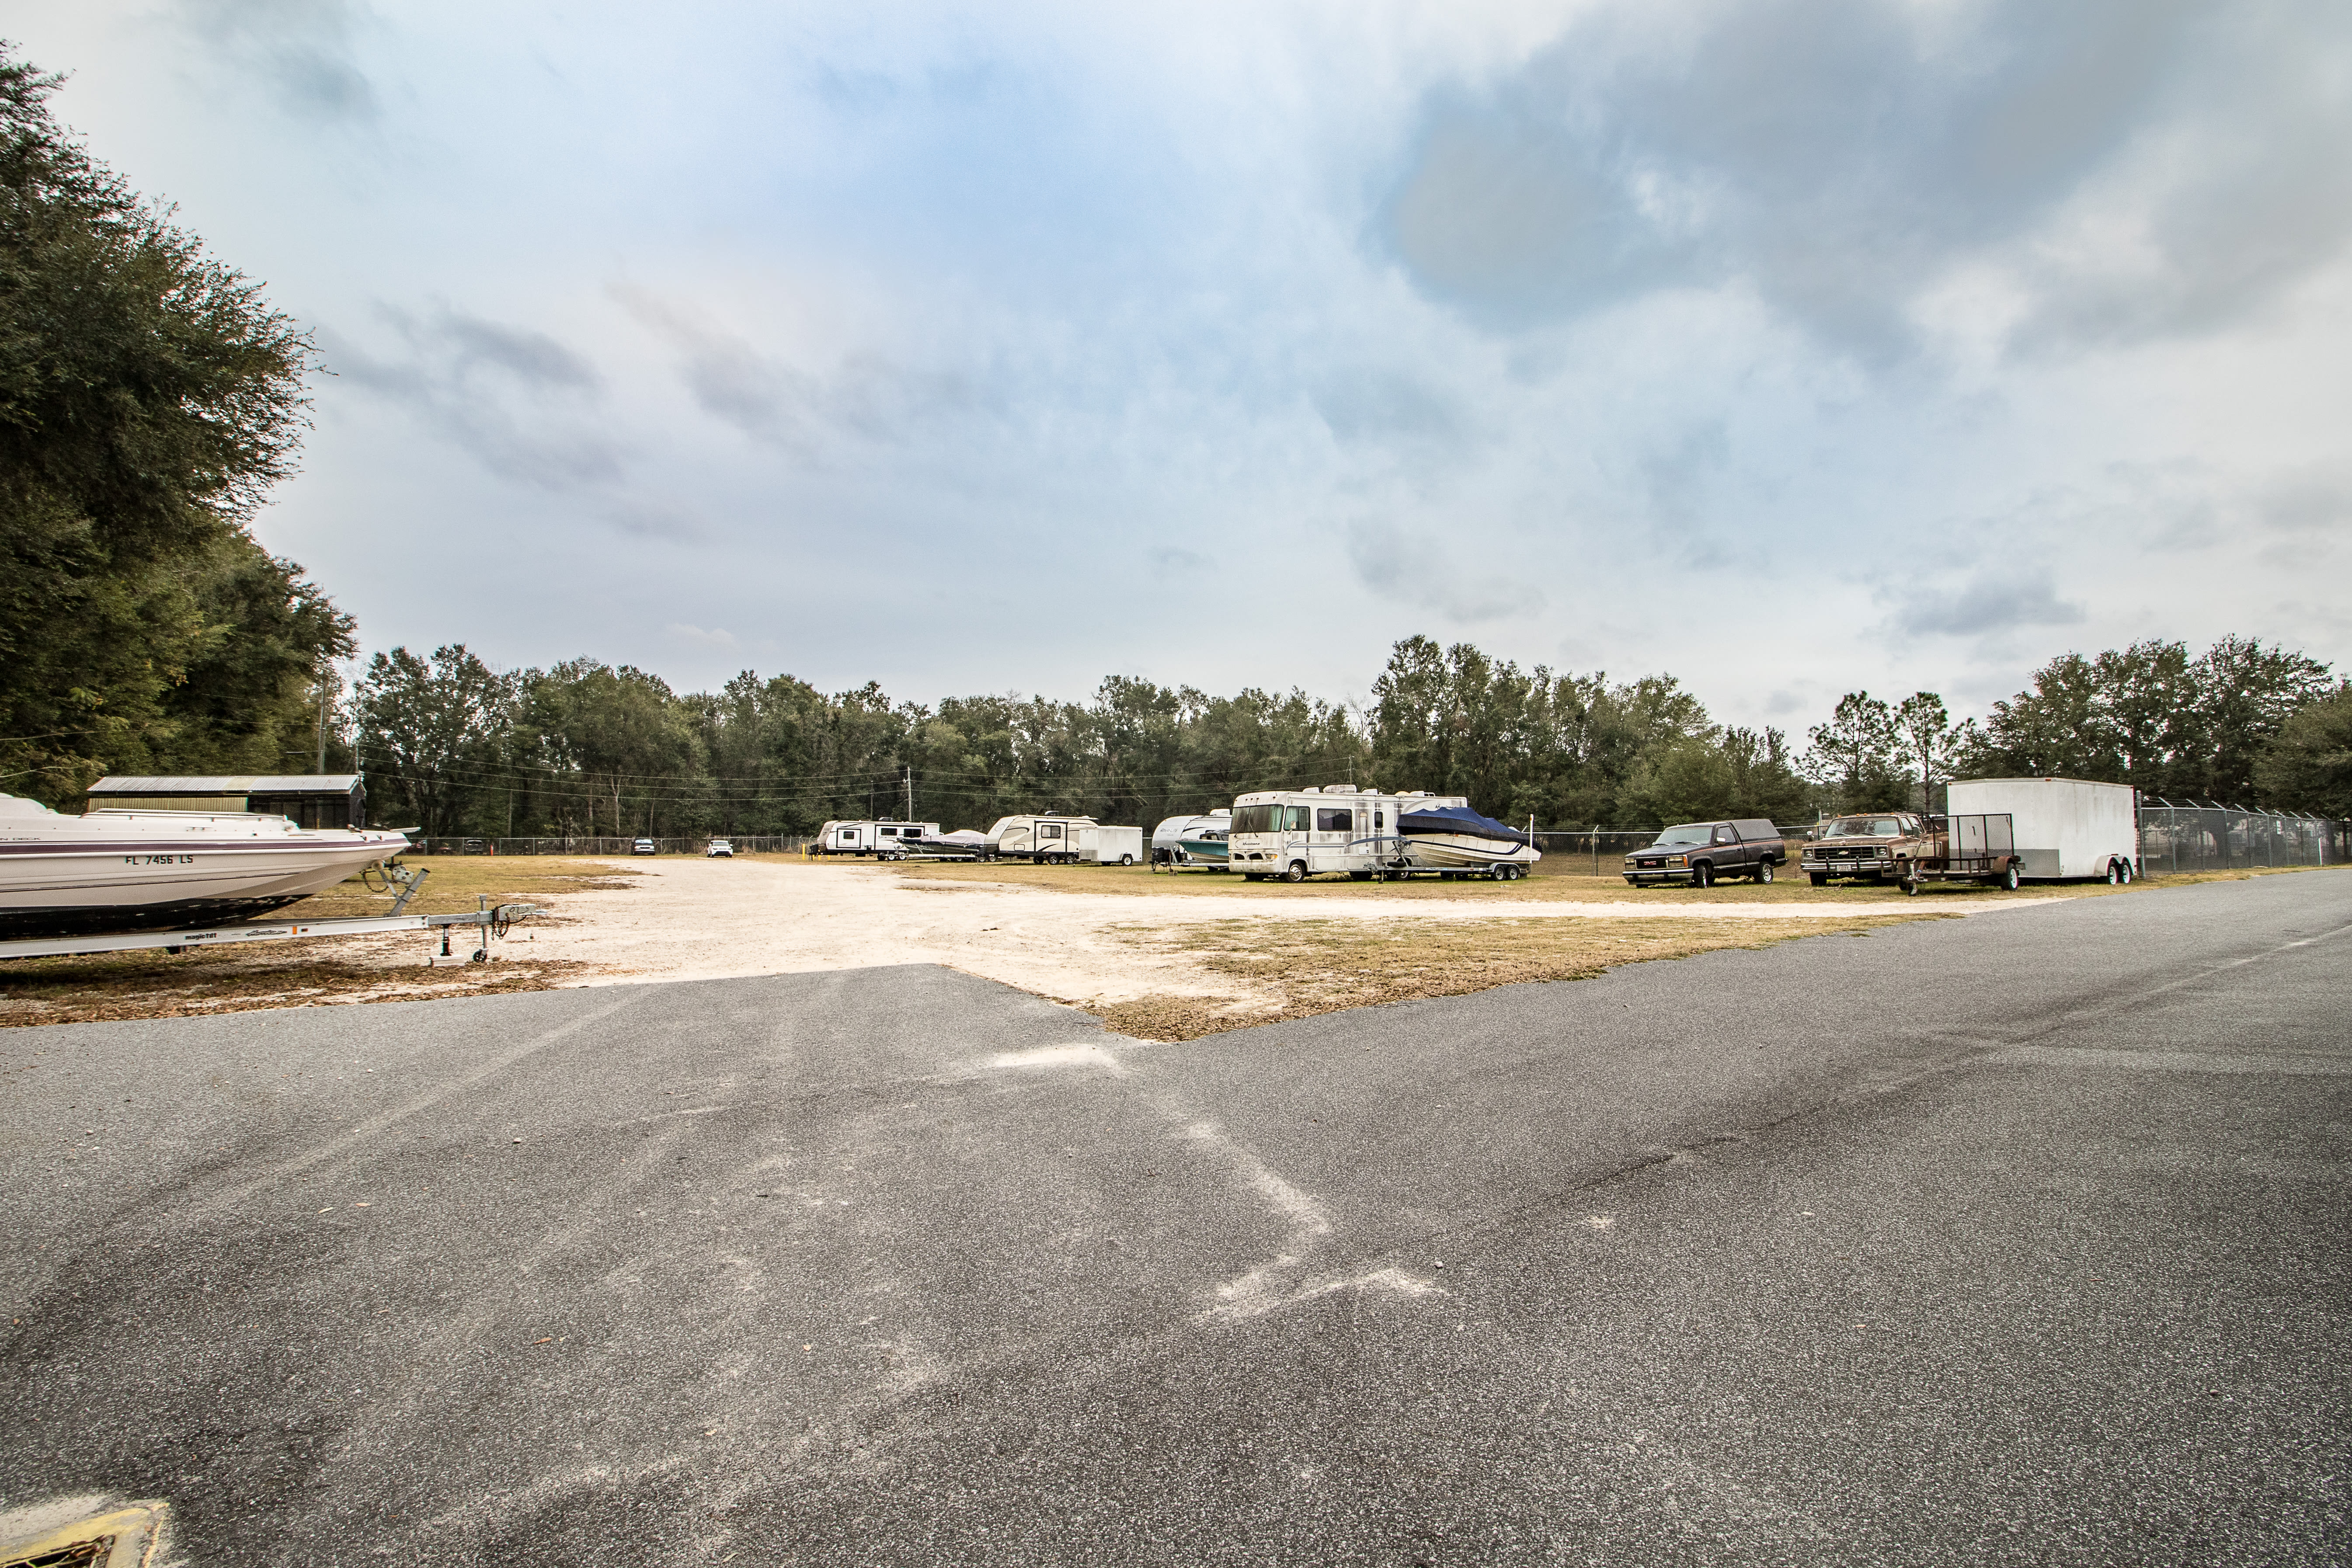 Rv storage at Neighborhood Storage in Belleview, Florida